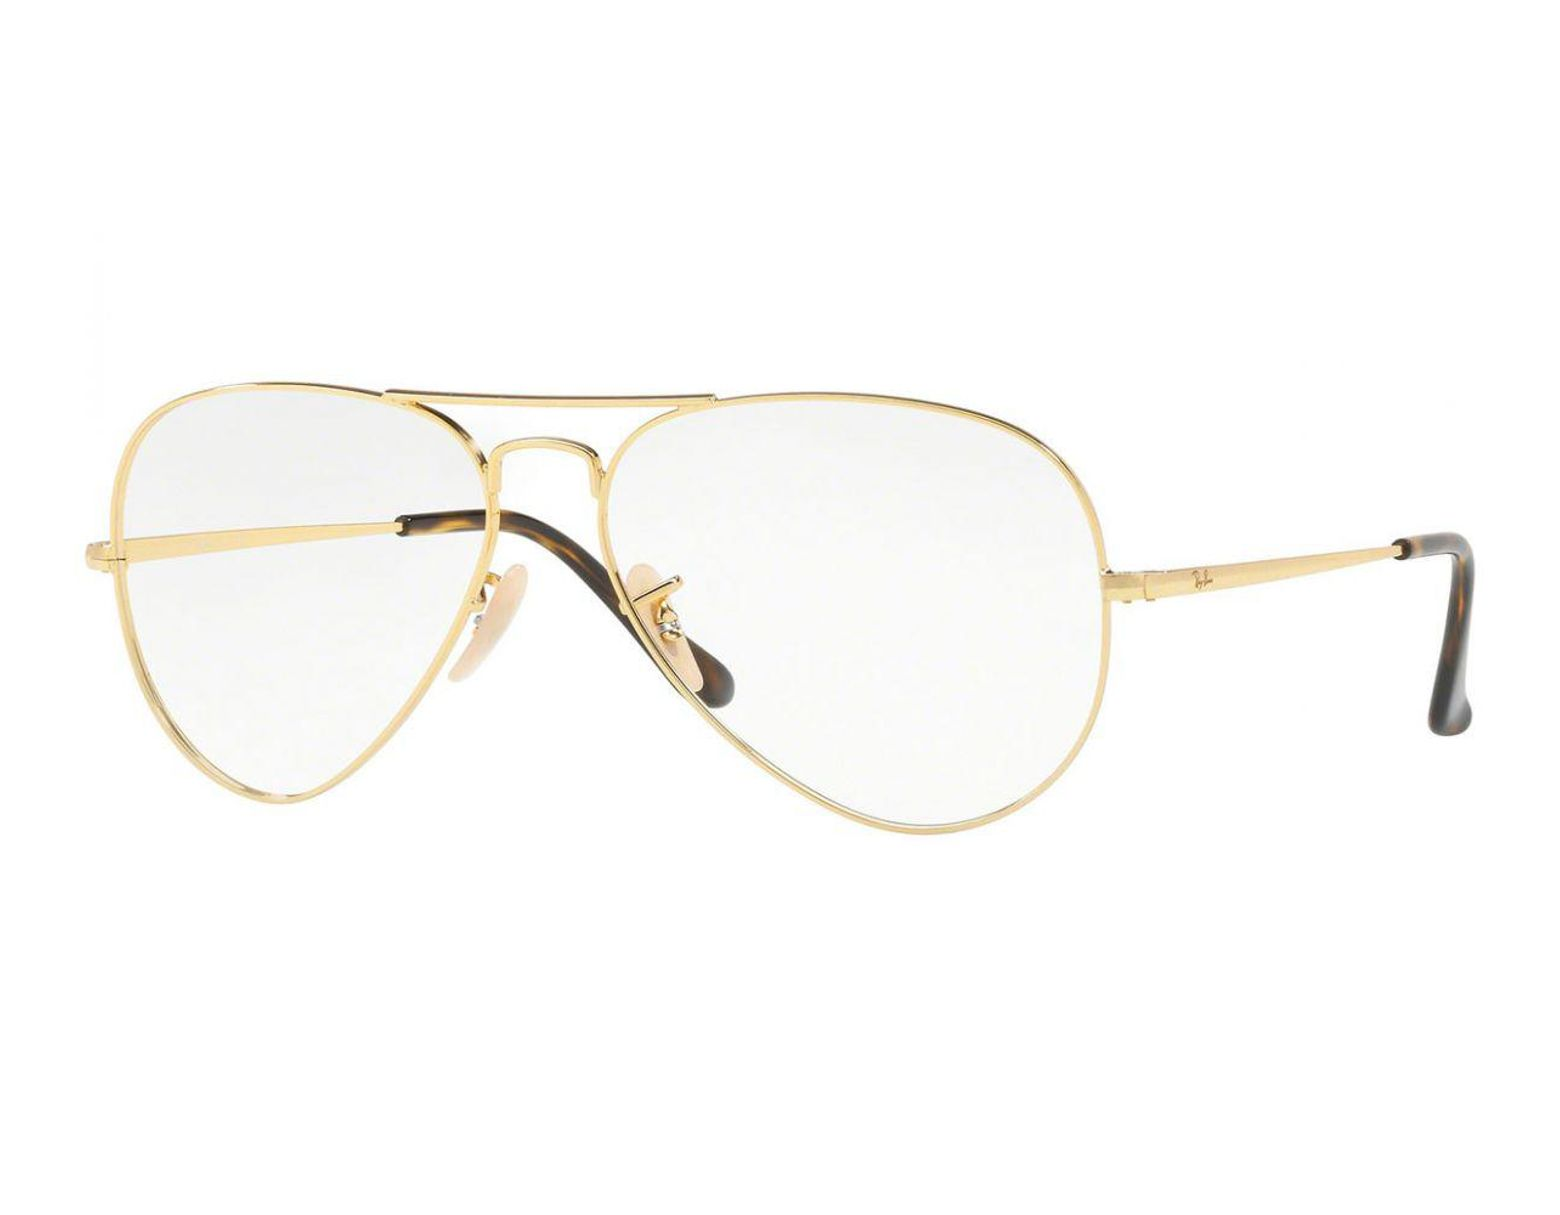 9ab69e48812e Ray-Ban Aviator Rx6489-2500 Gold Frames With Clear Lenses Eyewear in  Metallic for Men - Lyst